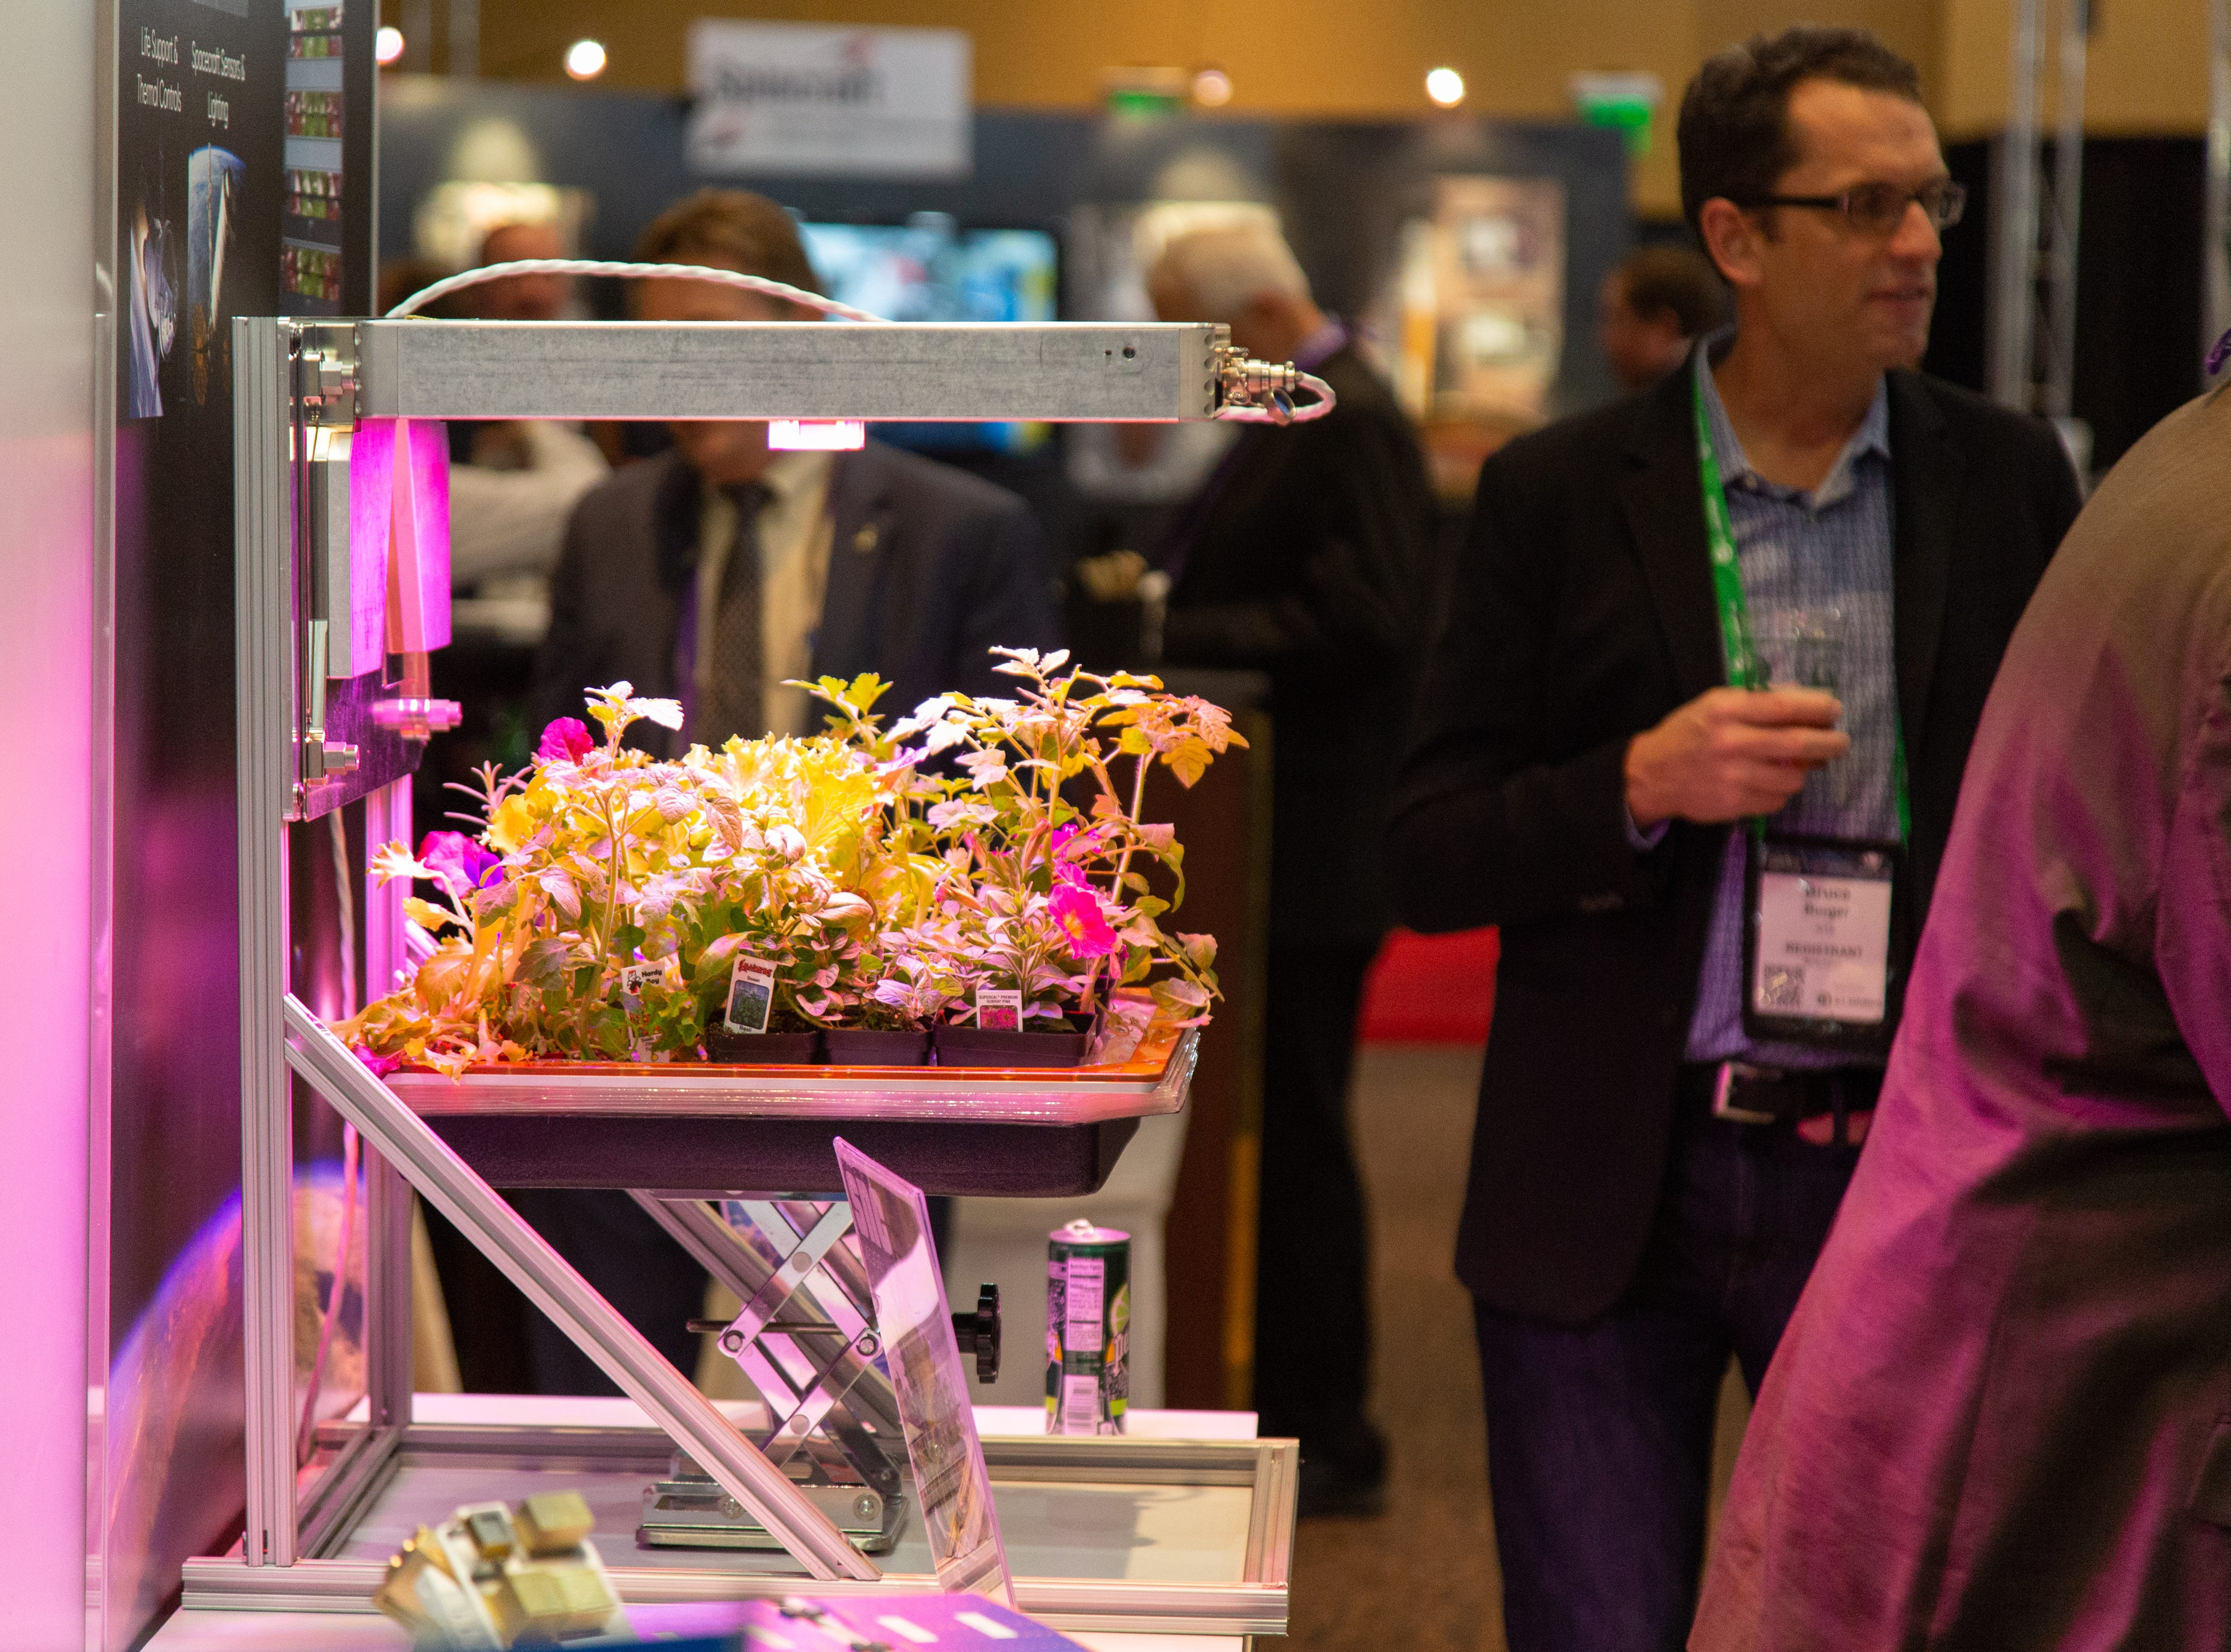 A vegetable-growing tool for space travel at the 35th Space Symposium.